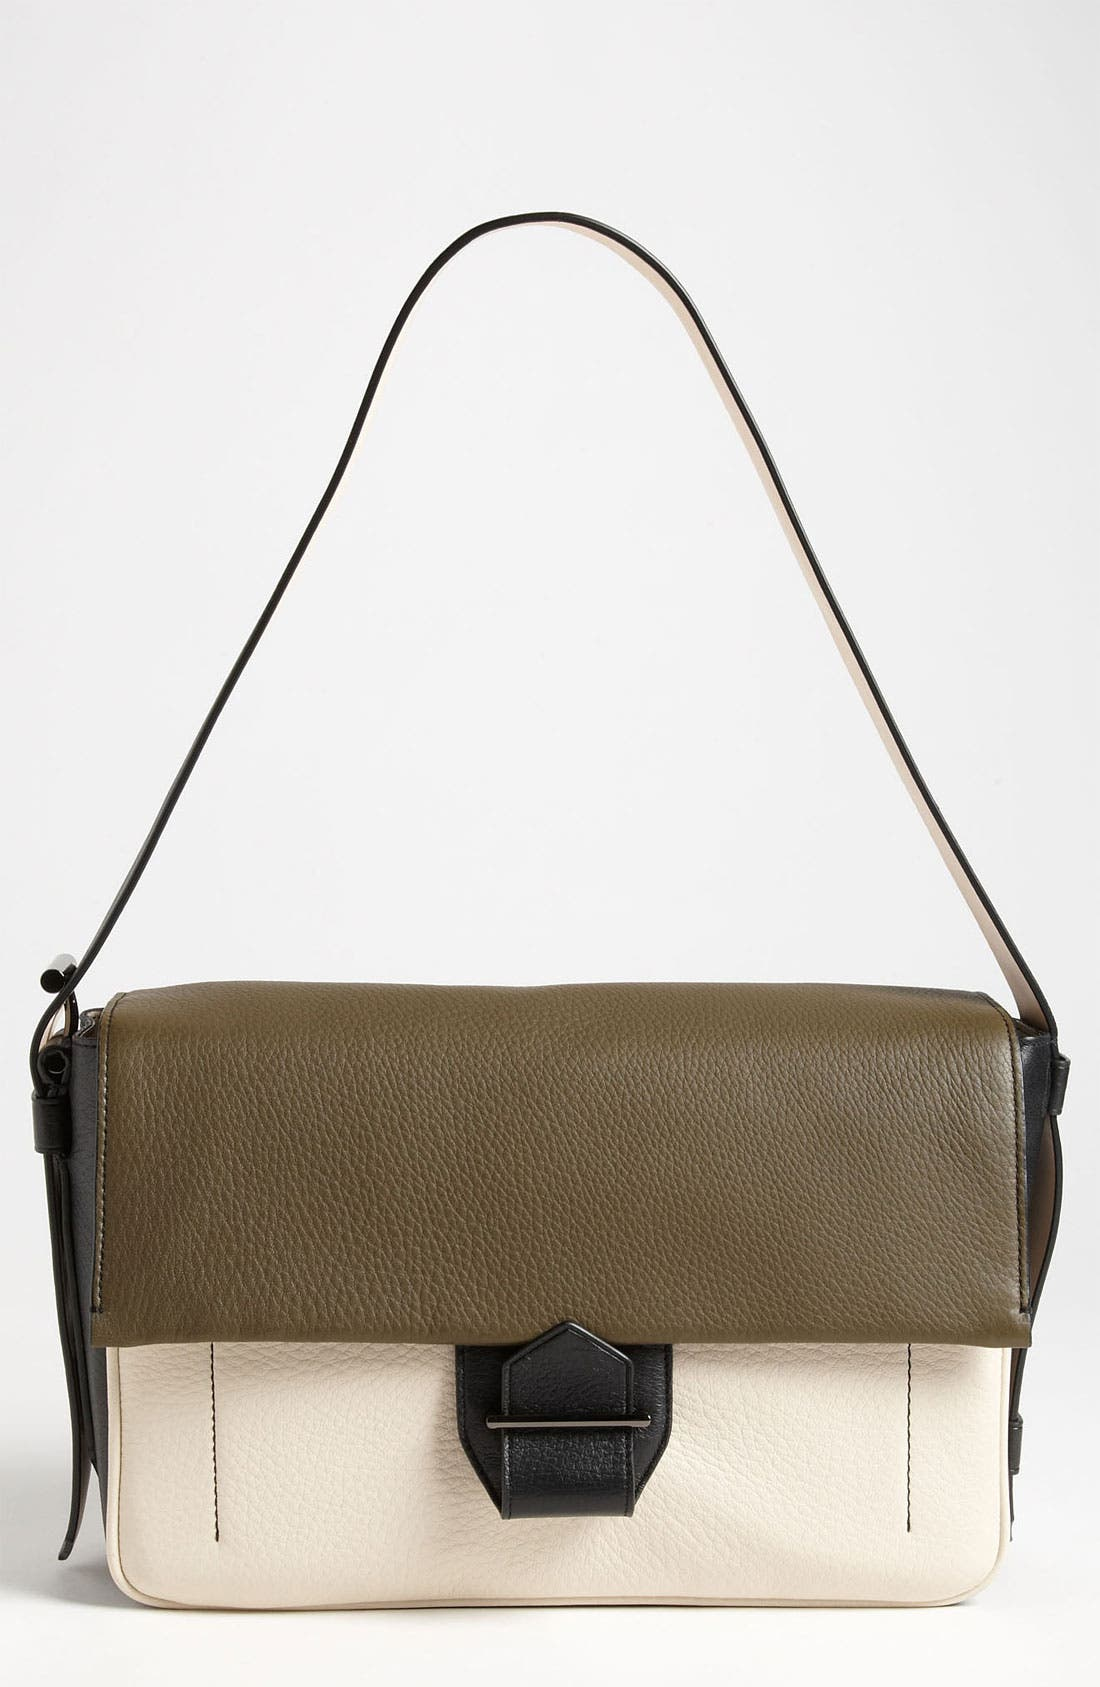 Reed Krakoff 'Standard' Leather Shoulder Bag